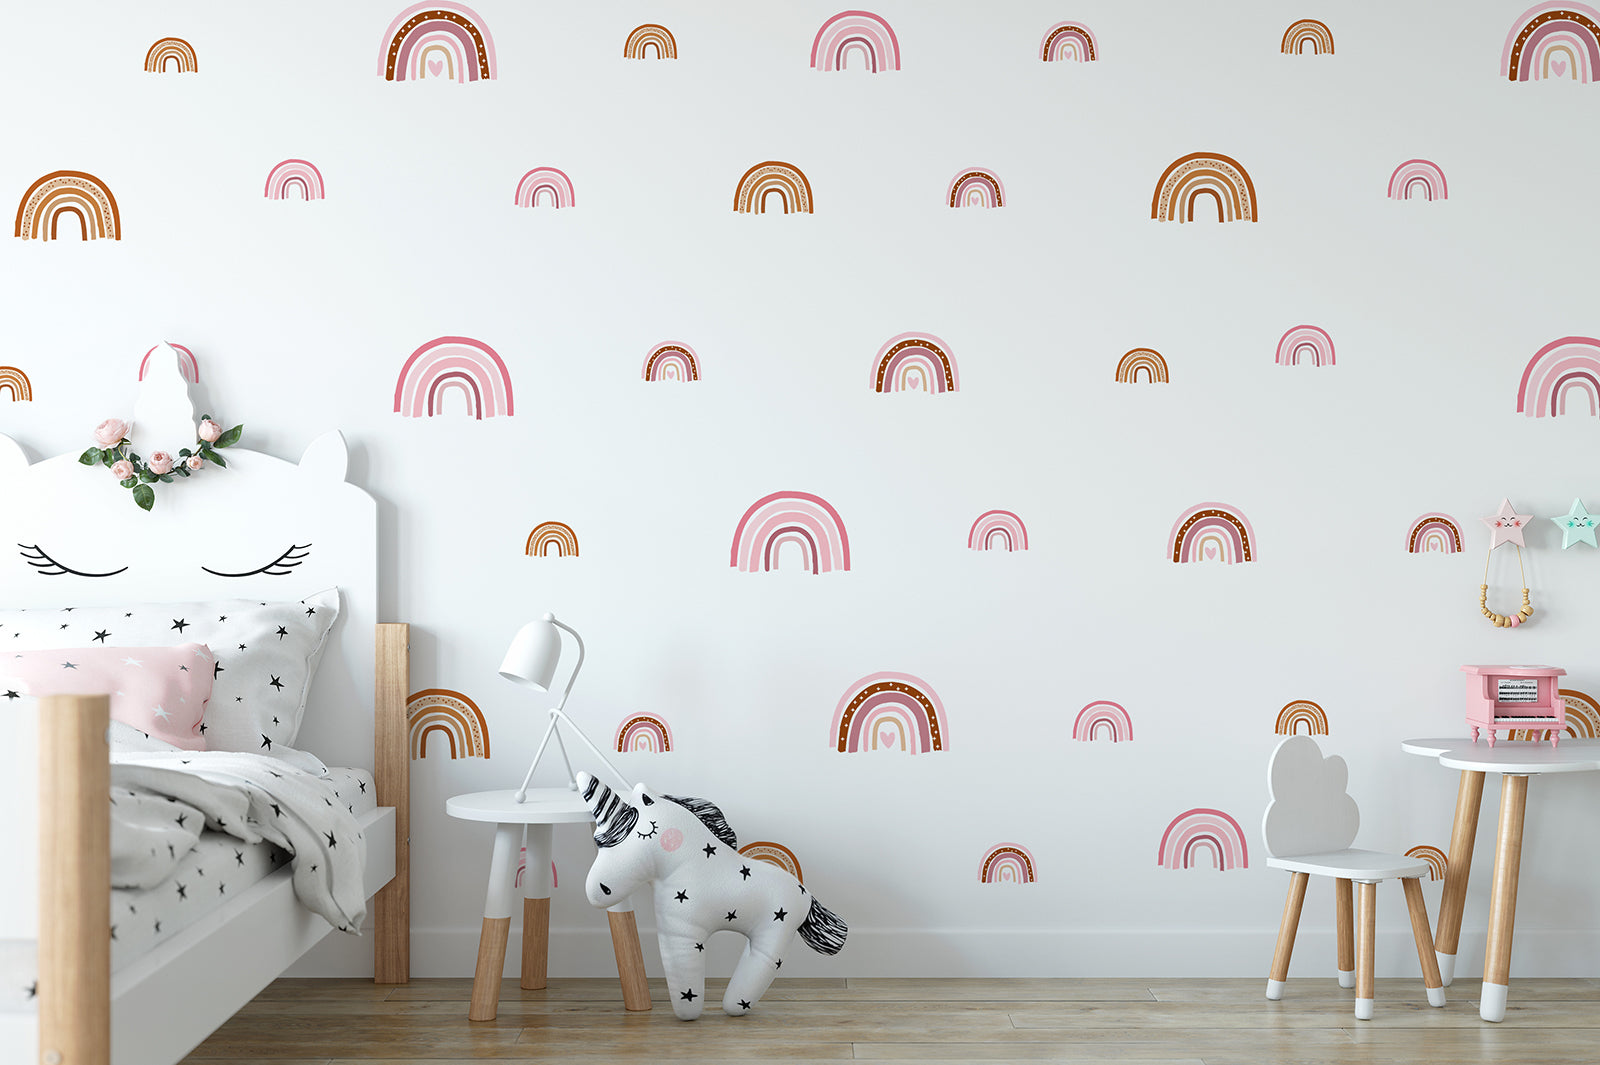 Small rainbow wall decals